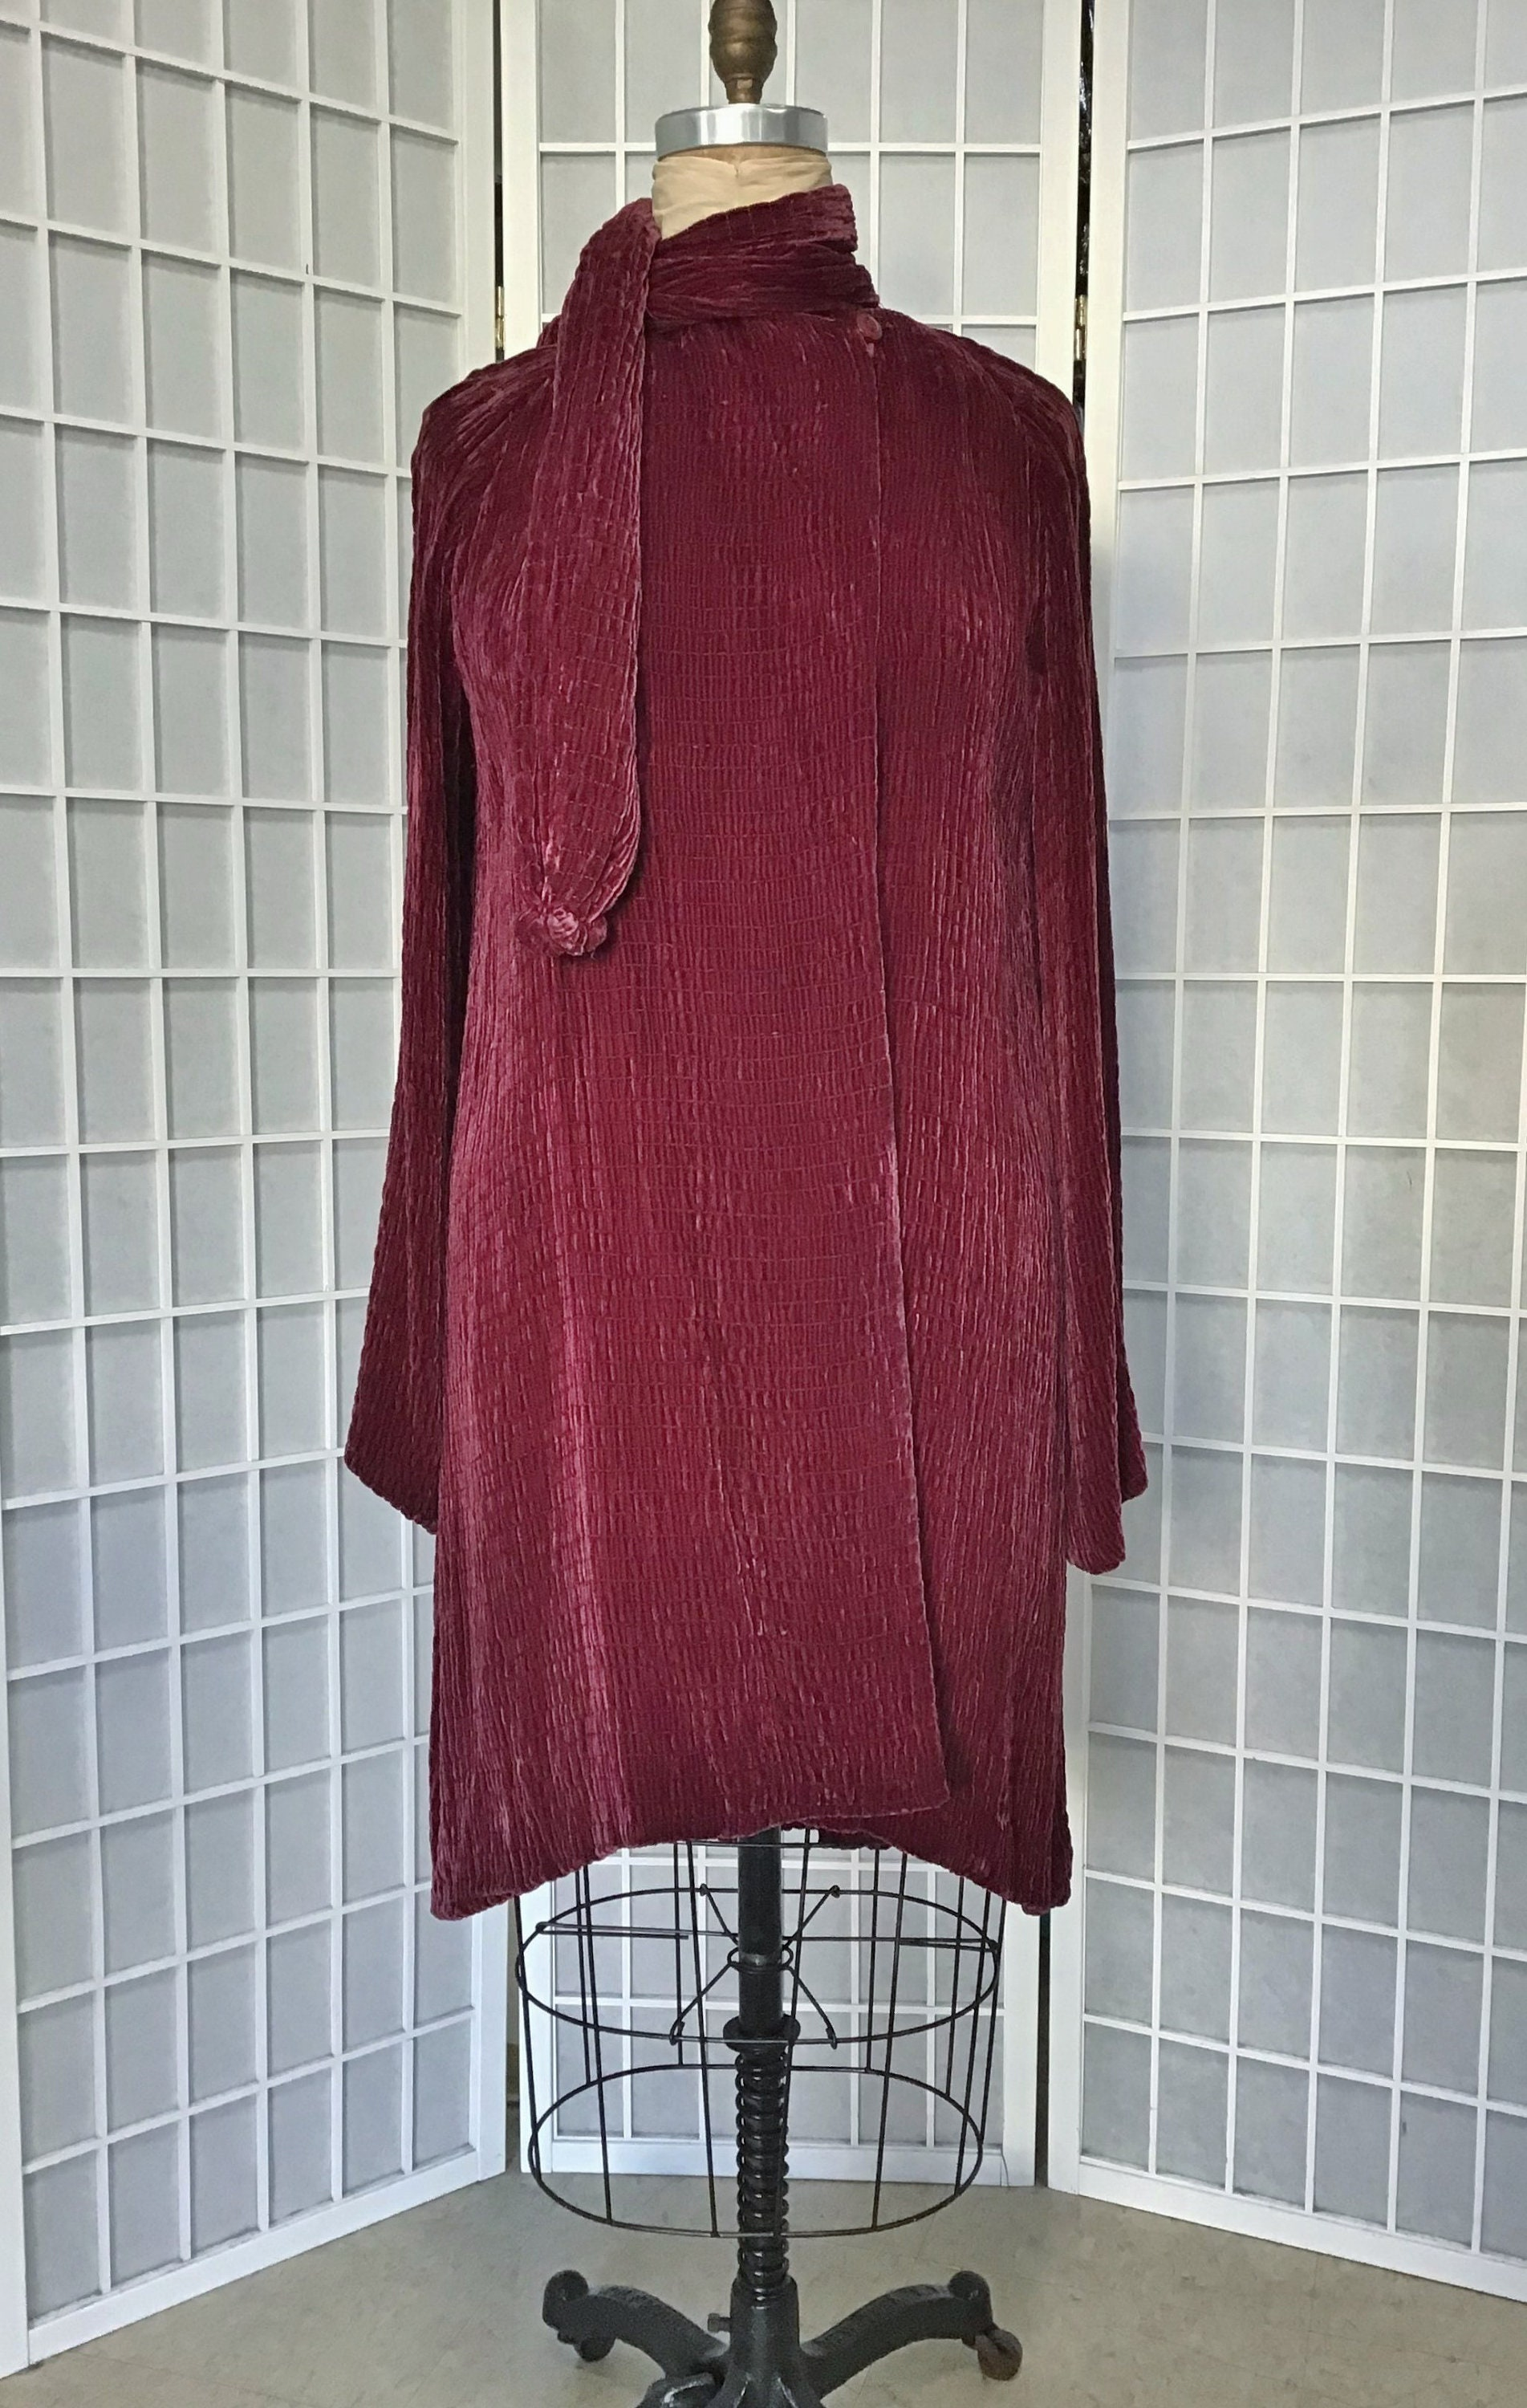 Vintage Scarf Styles -1920s to 1960s 1930S Silk Velvet Coat With Attached Scarf, Pauline Models $36.00 AT vintagedancer.com